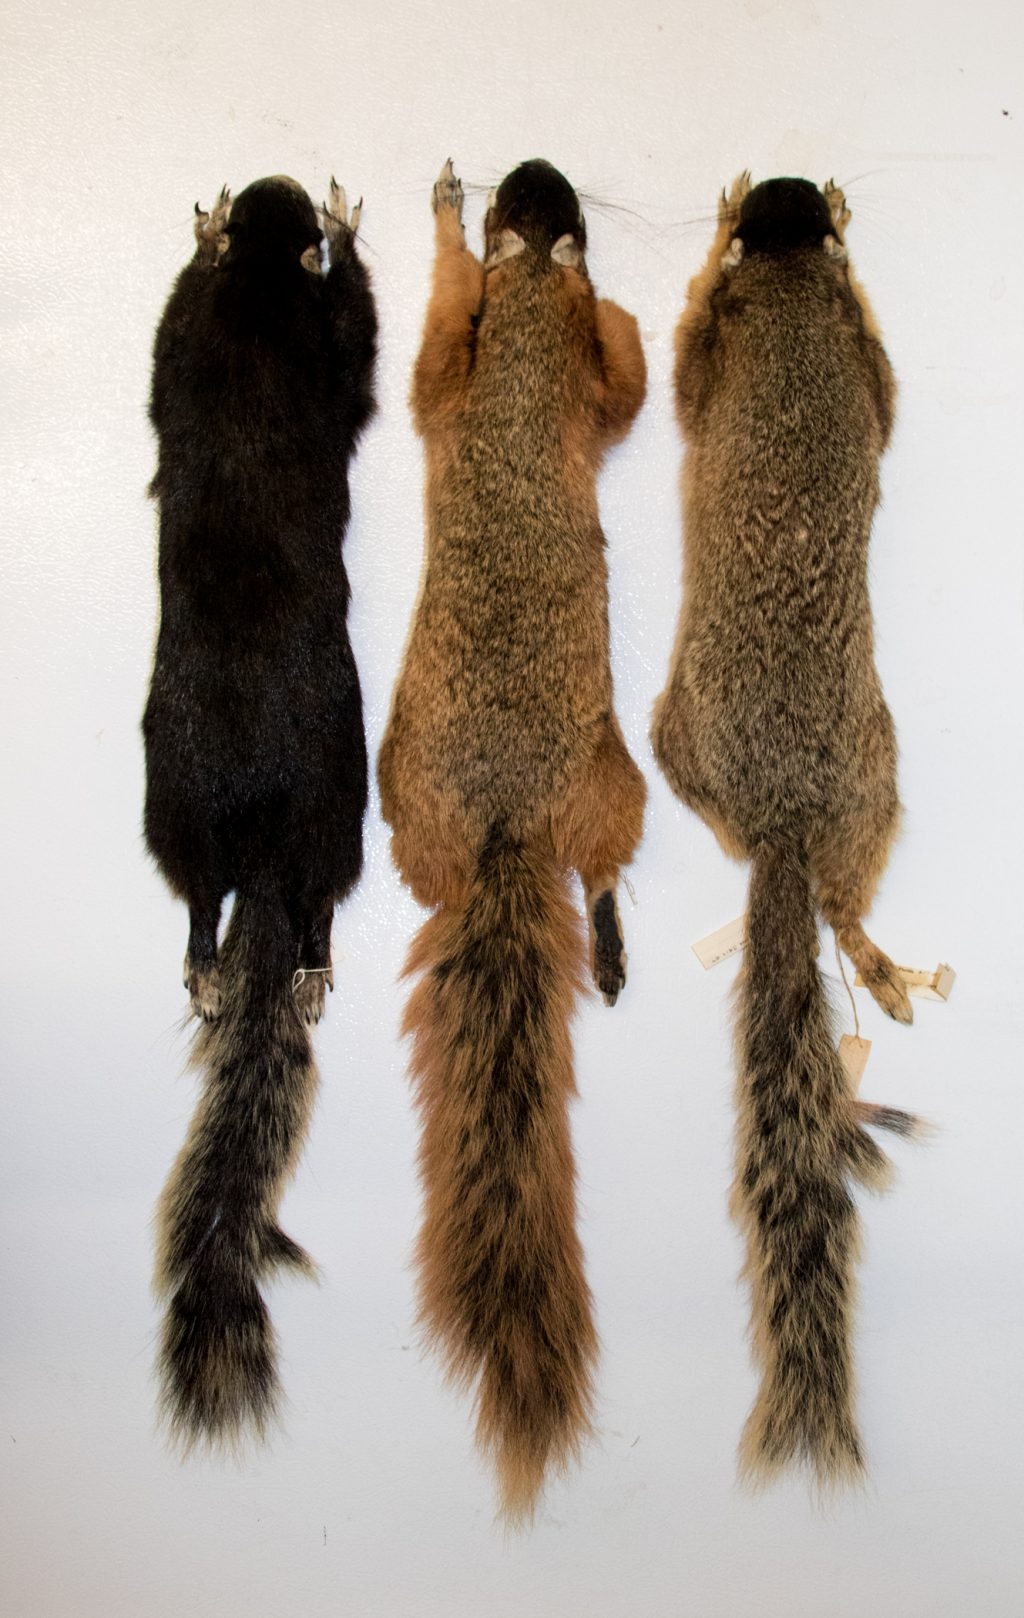 three fox squirrel specimens